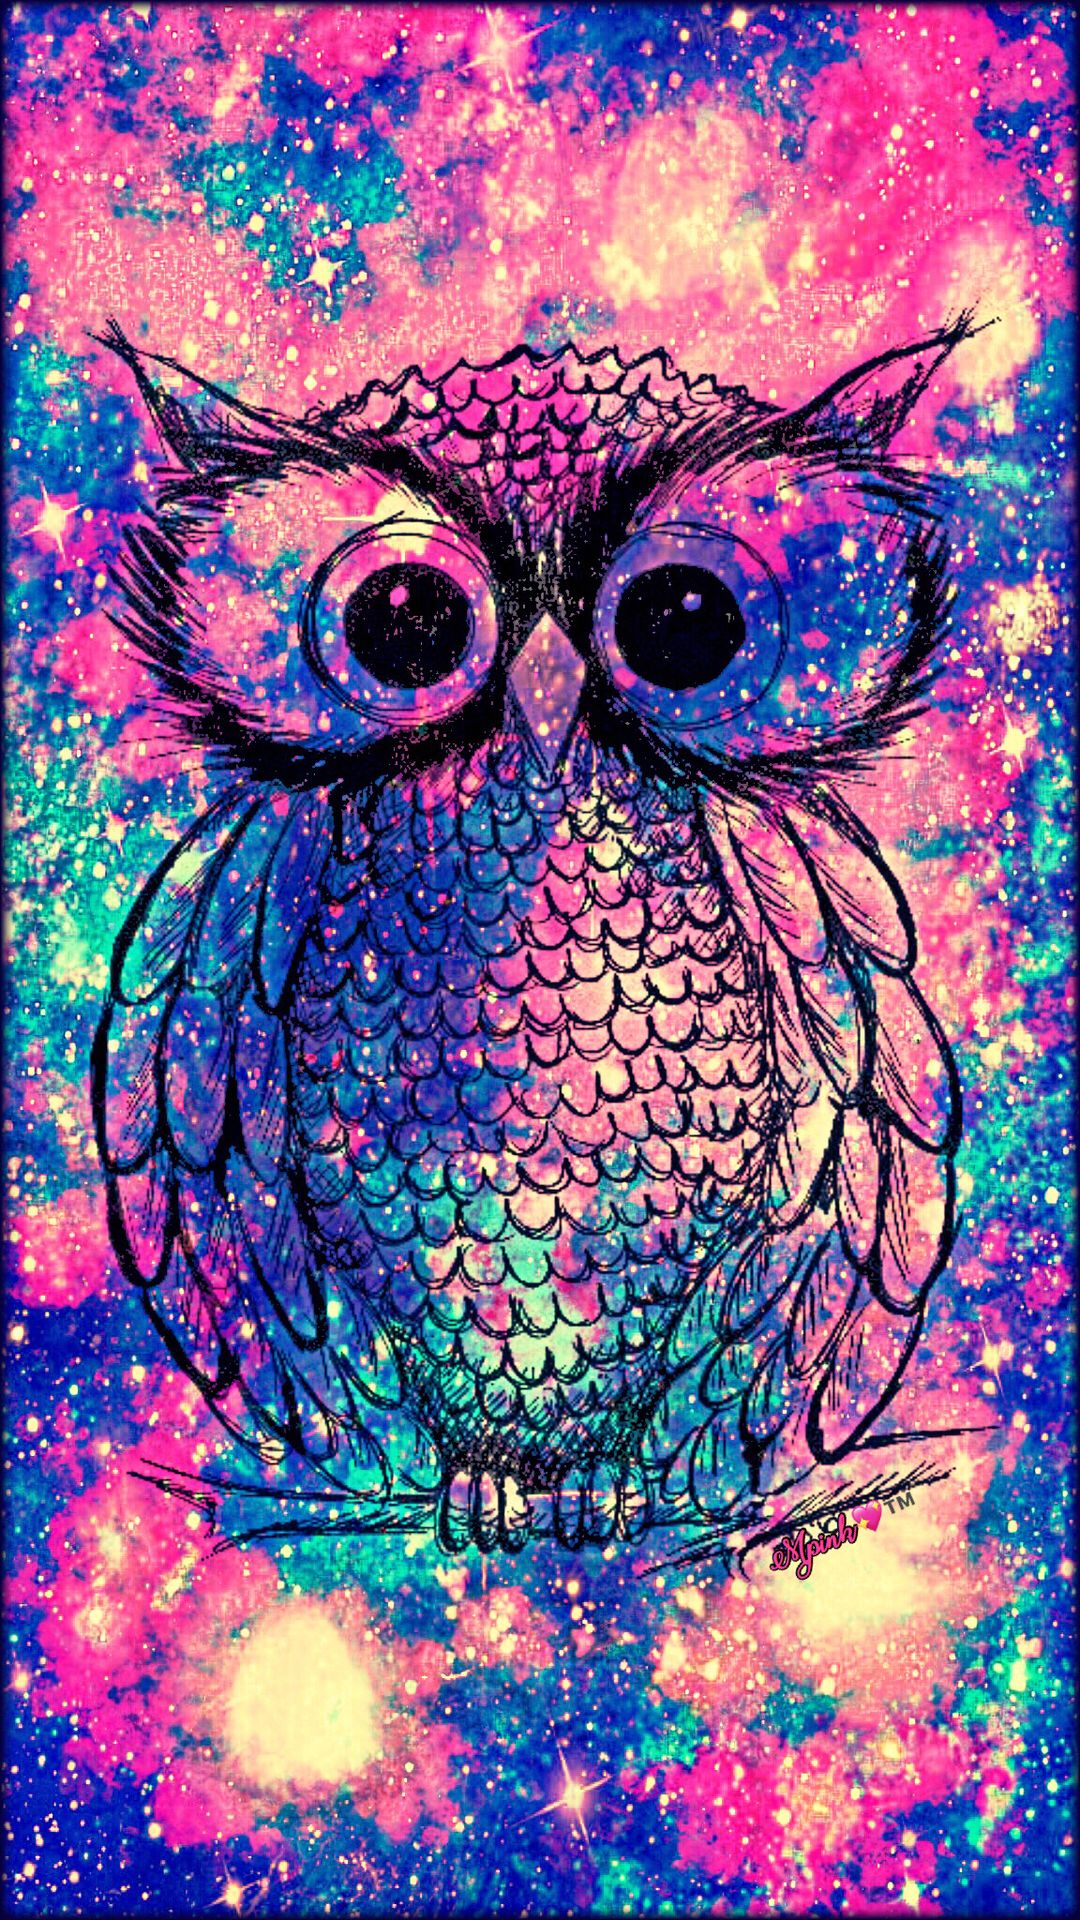 Vintage owl galaxy wallpaper androidwallpaper iphonewallpaper vintage owl galaxy wallpaper androidwallpaper iphonewallpaper wallpaper galaxy sparkle glitter voltagebd Image collections